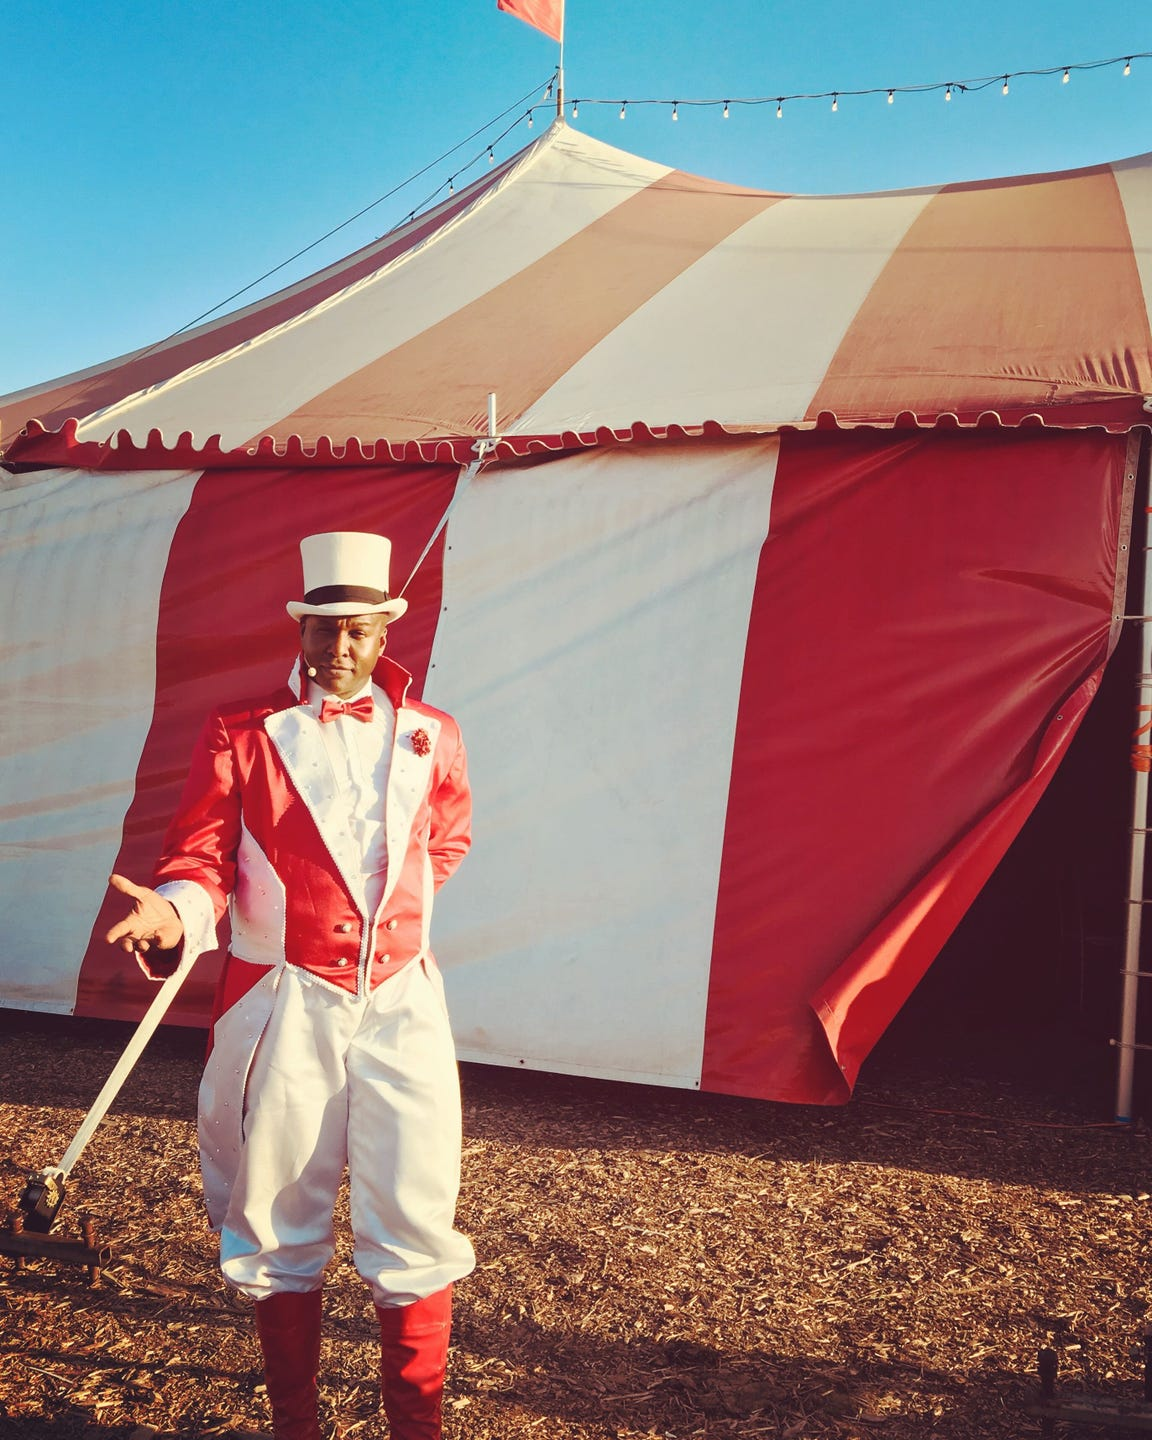 Ringmaster Jonathan Lee Iverson will host the Venardos Circus March 4-15 at Riverview Park in Shreveport.